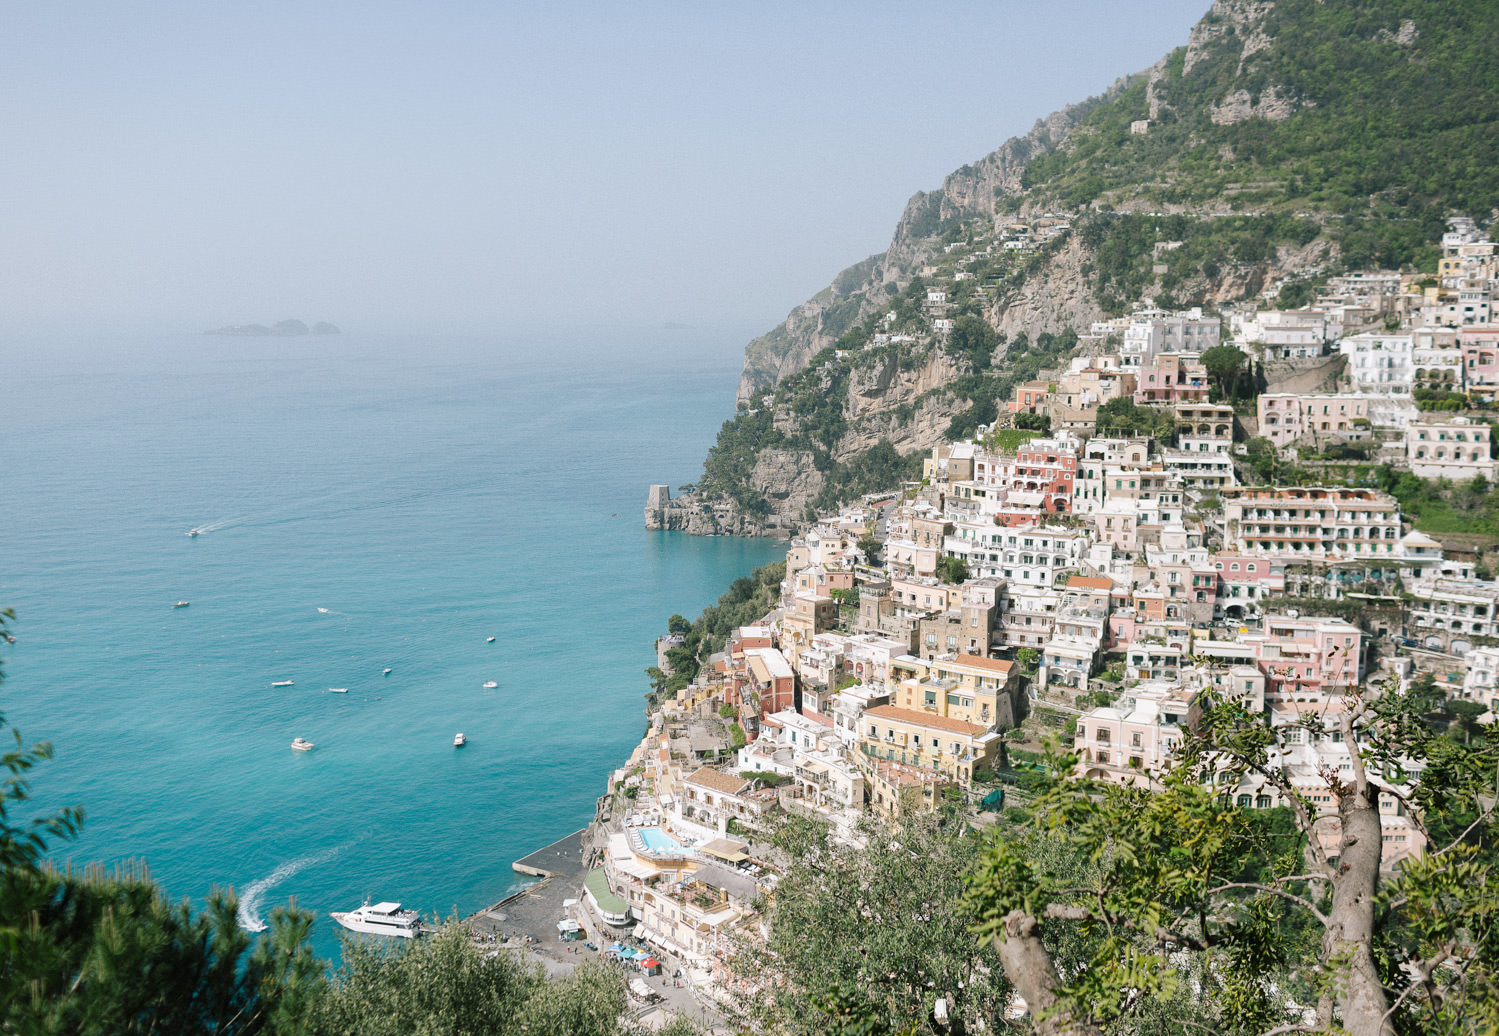 Positano view from Villa San Giacomo, Amalfi Coast | Photo: Camilla Anchisi Photography